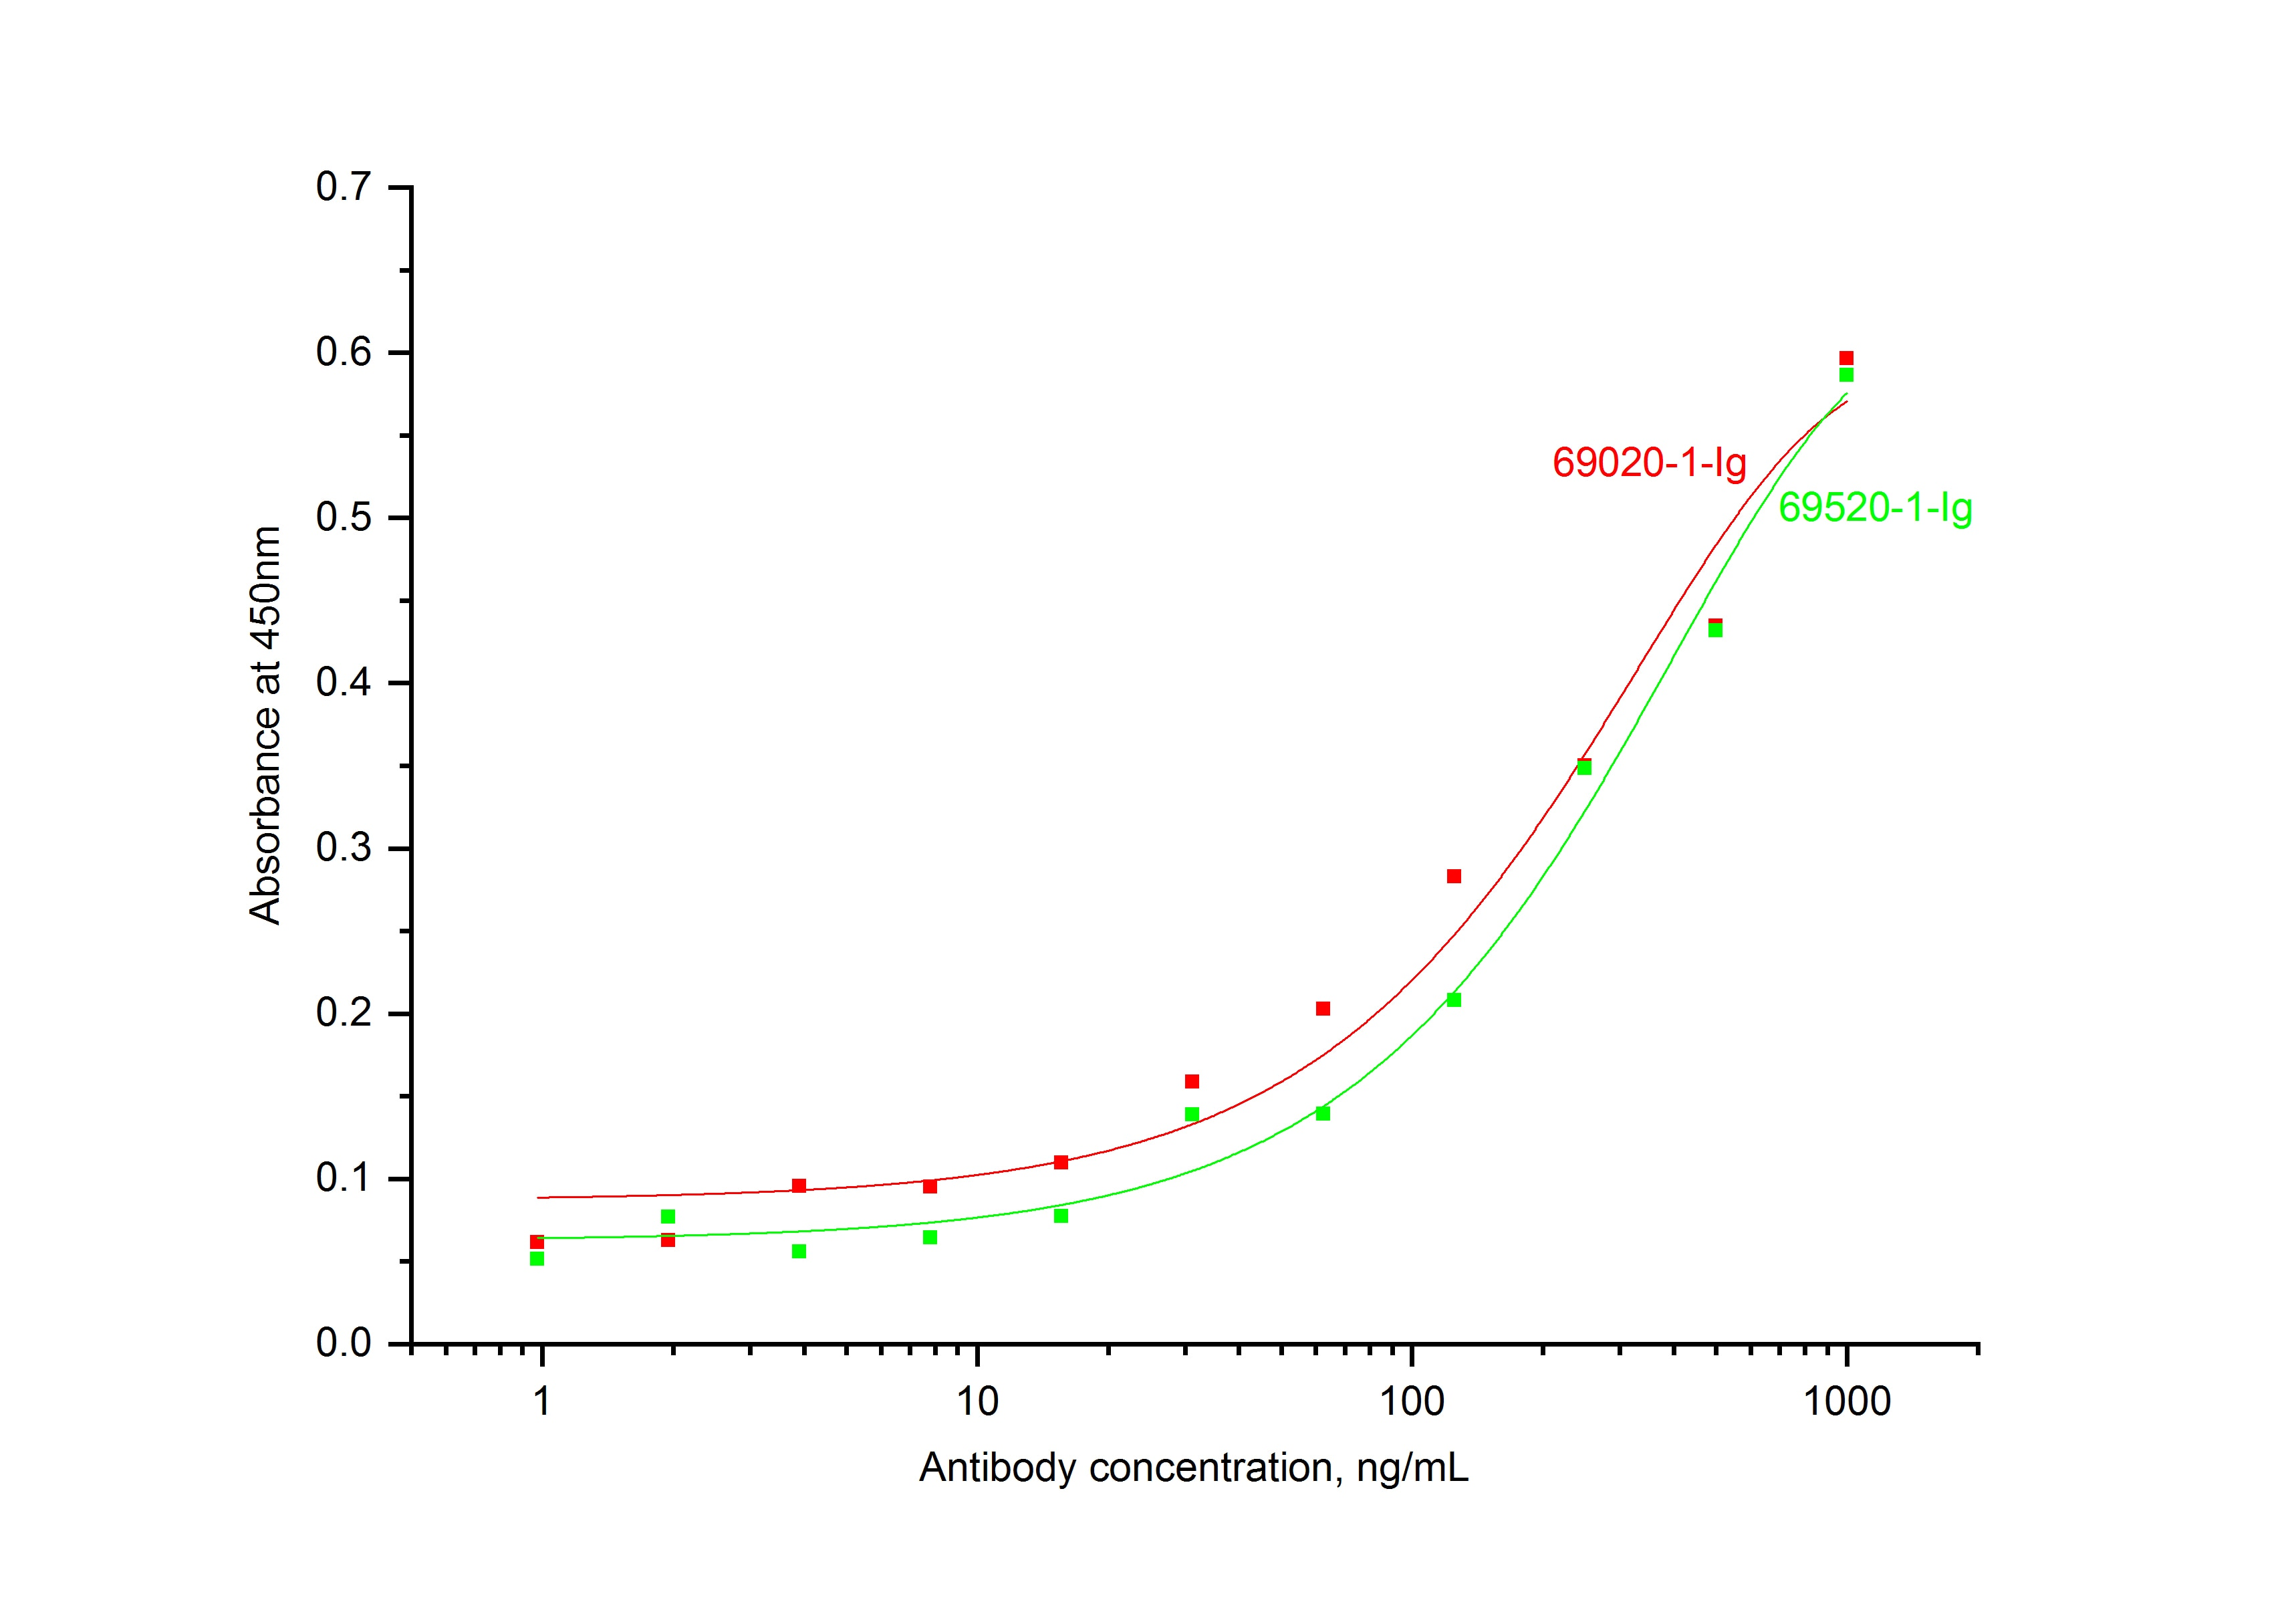 ELISA experiment of Recombinant protein using 69020-1-Ig